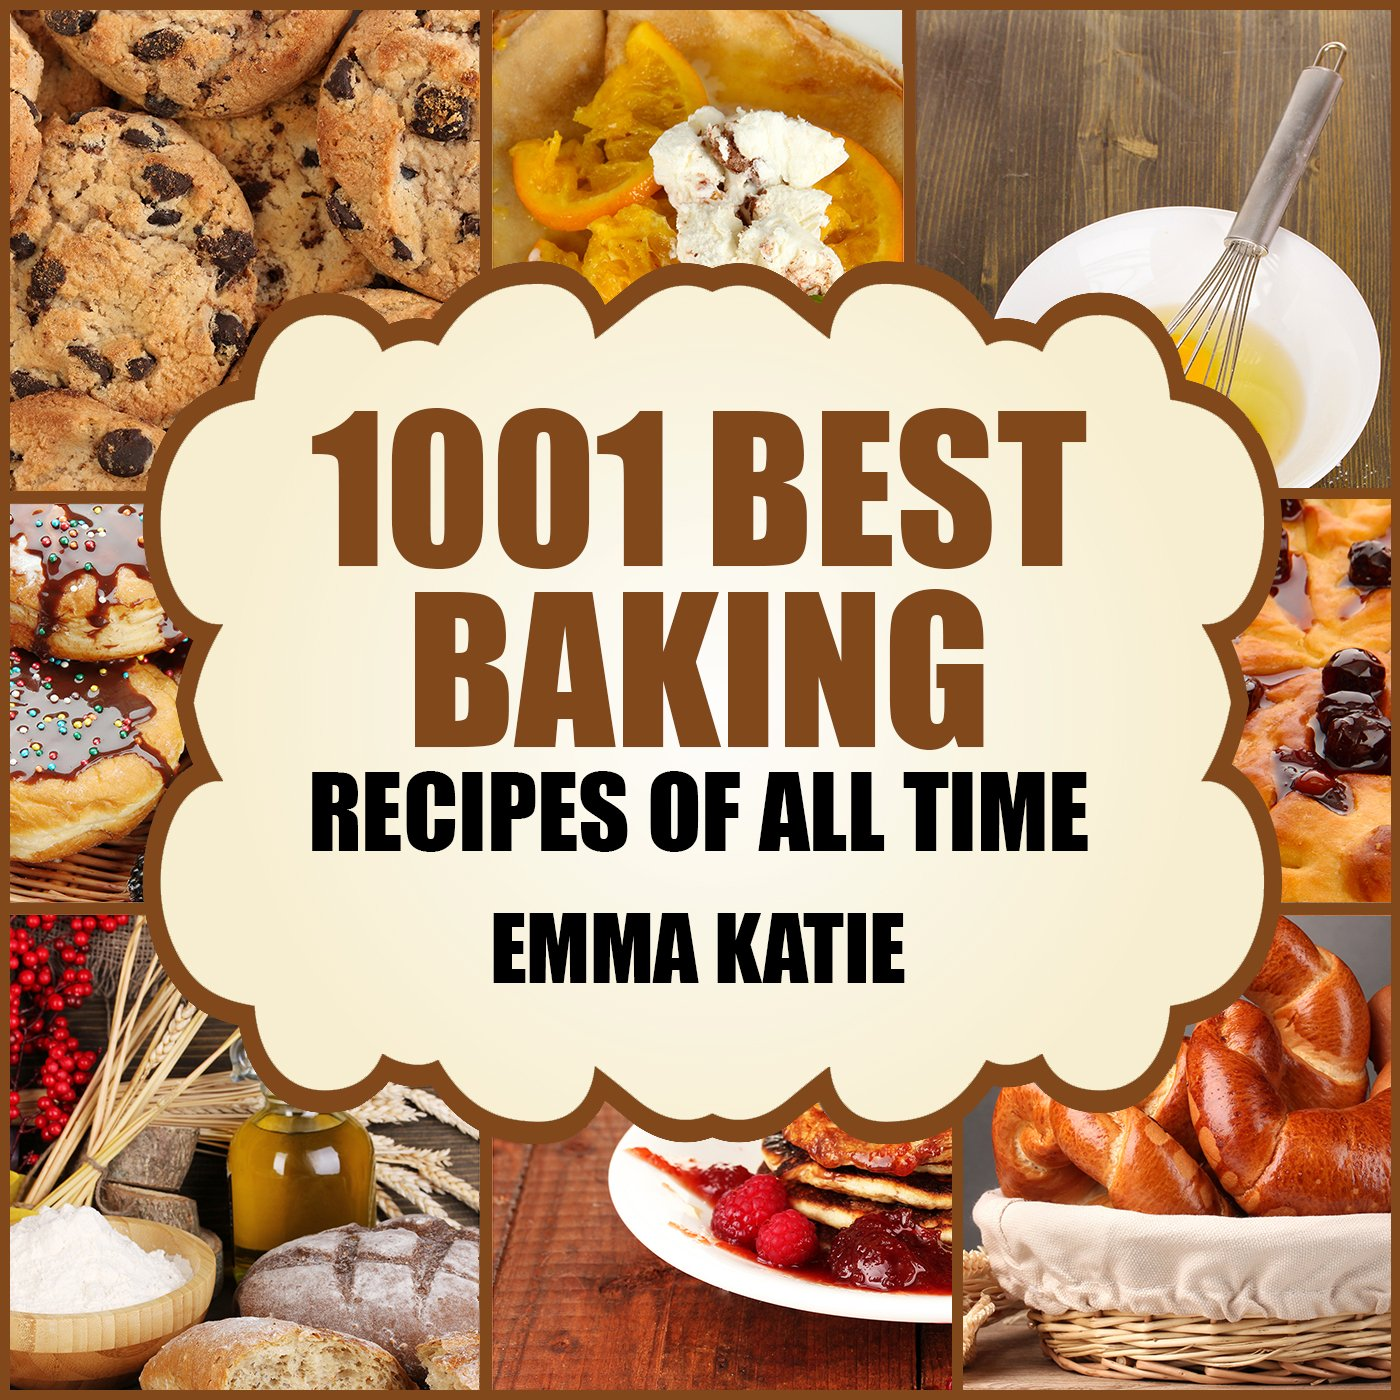 Image Of1001 Best Baking Recipes Of All Time: A Baking Cookbook With Over 1001 Recipes Book For Baking Basics Such As Bread, Cakes...